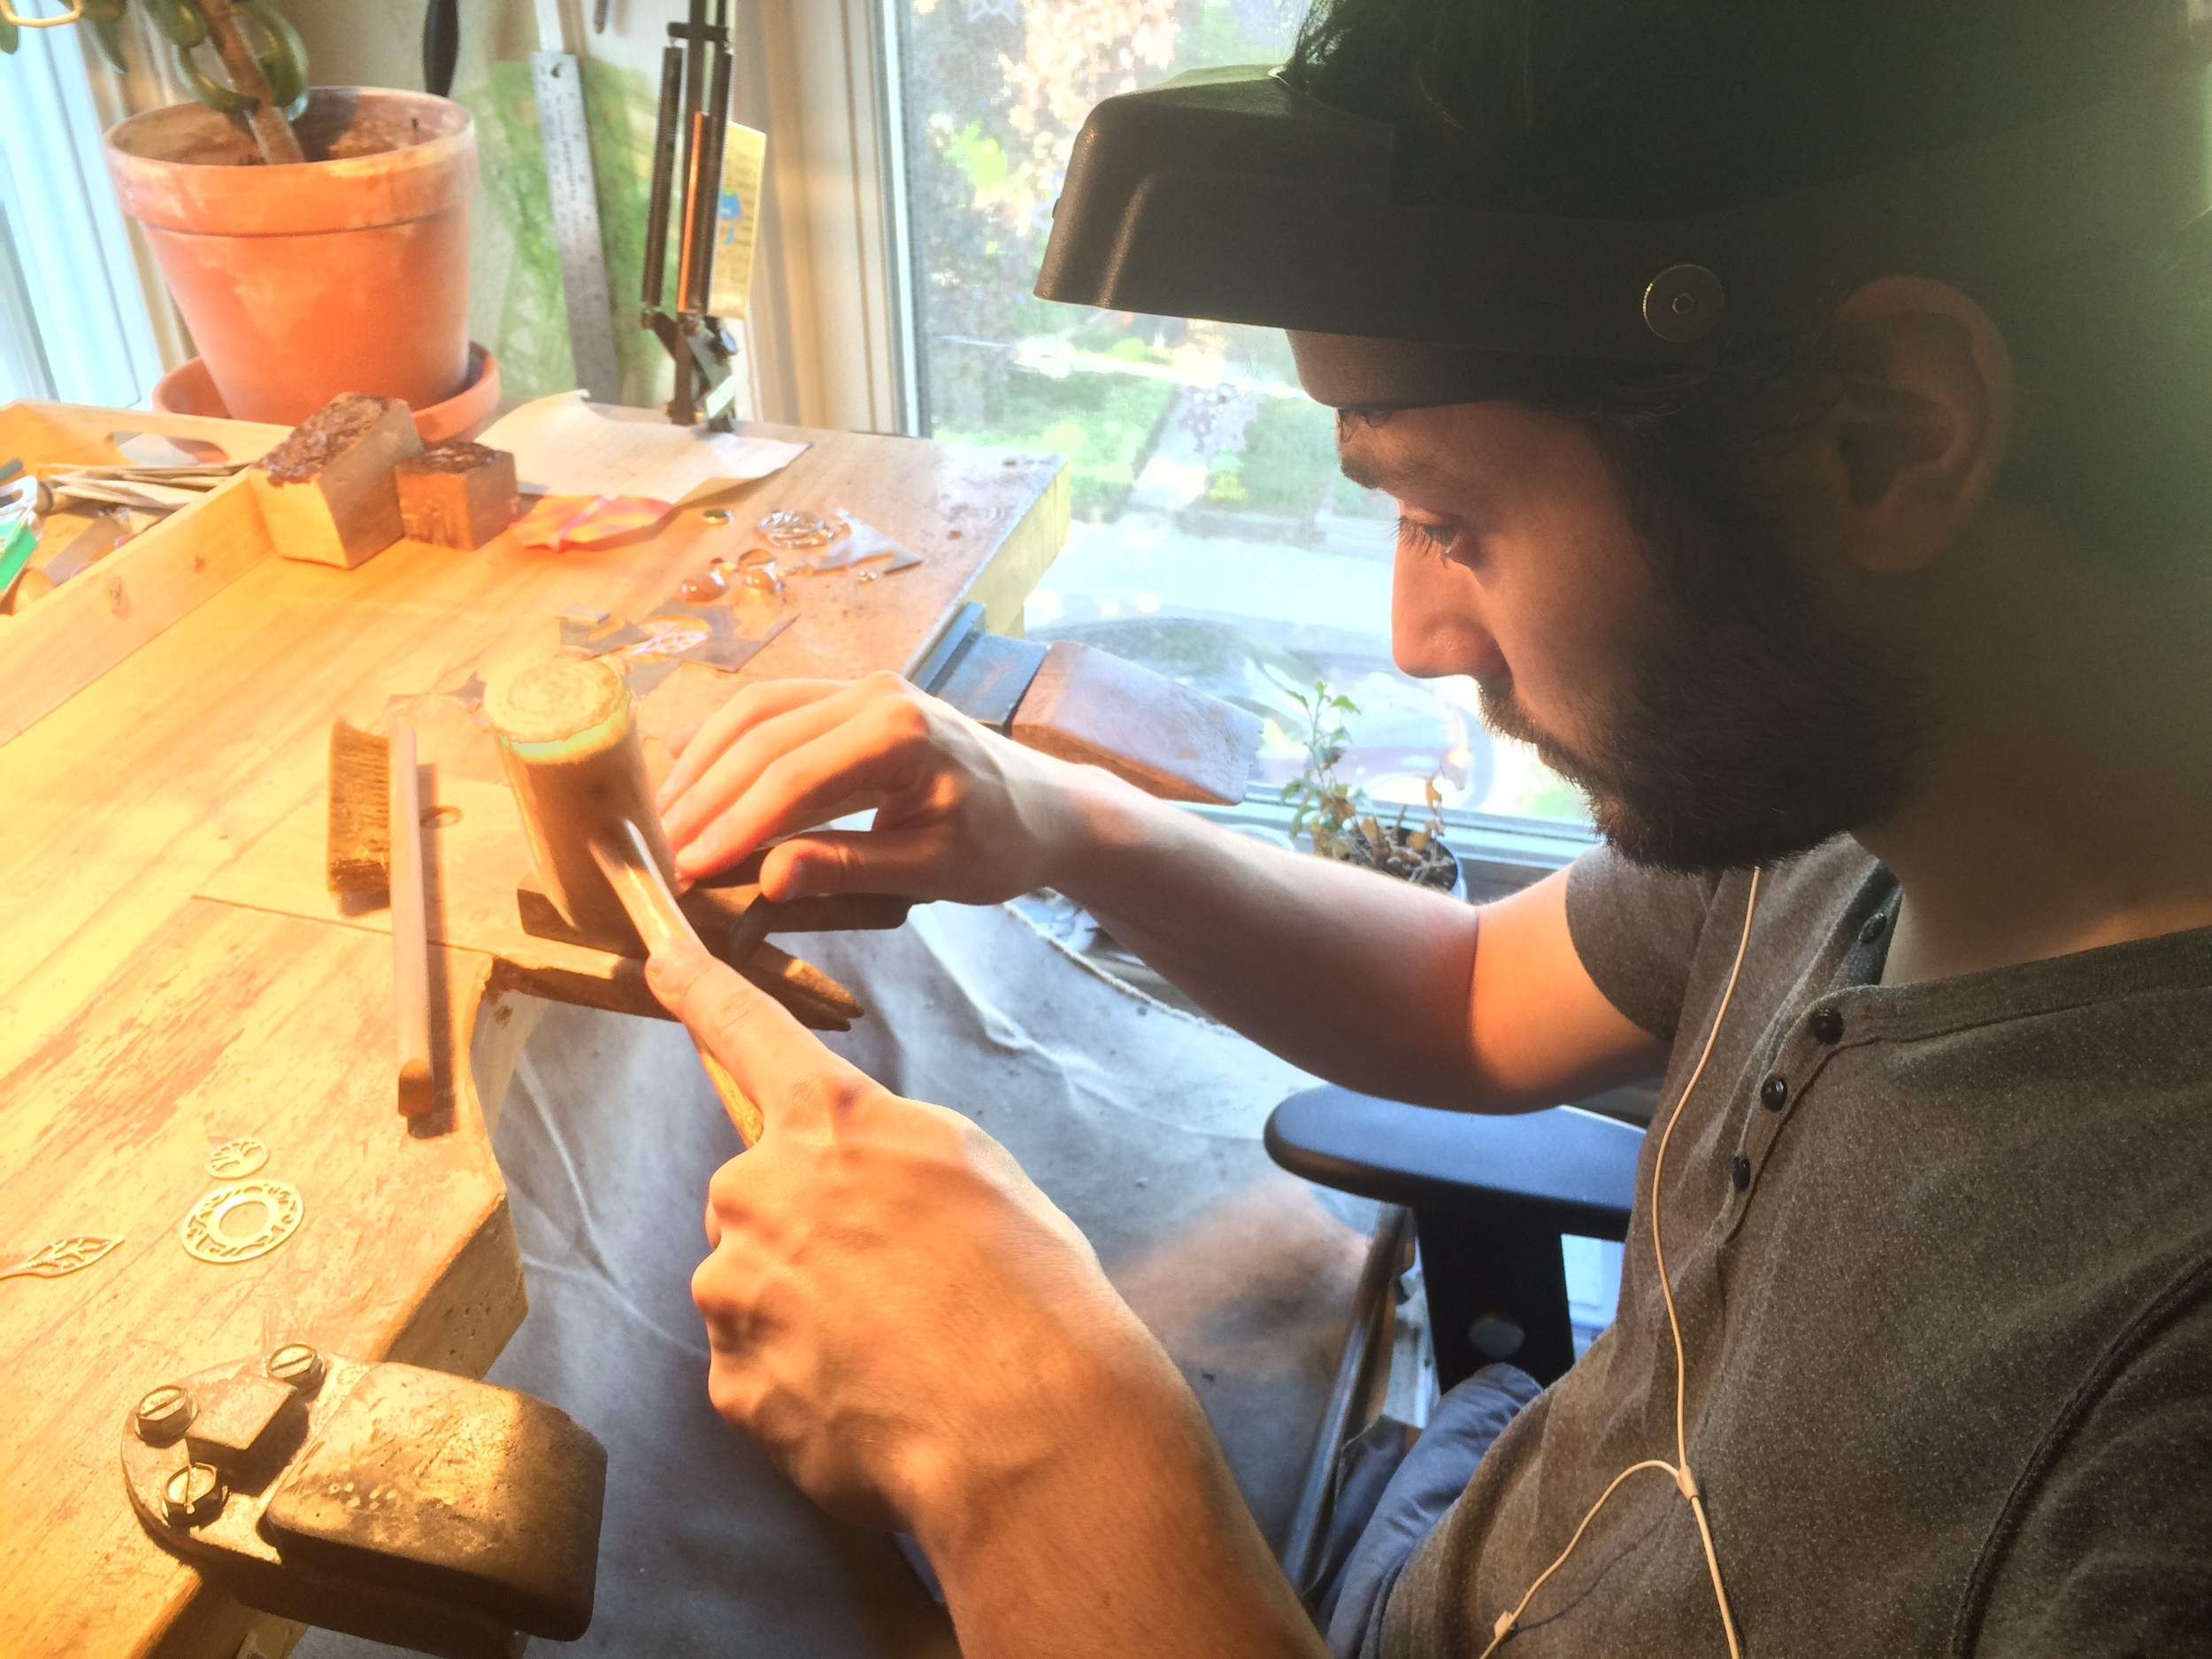 Hard at work on the bench.